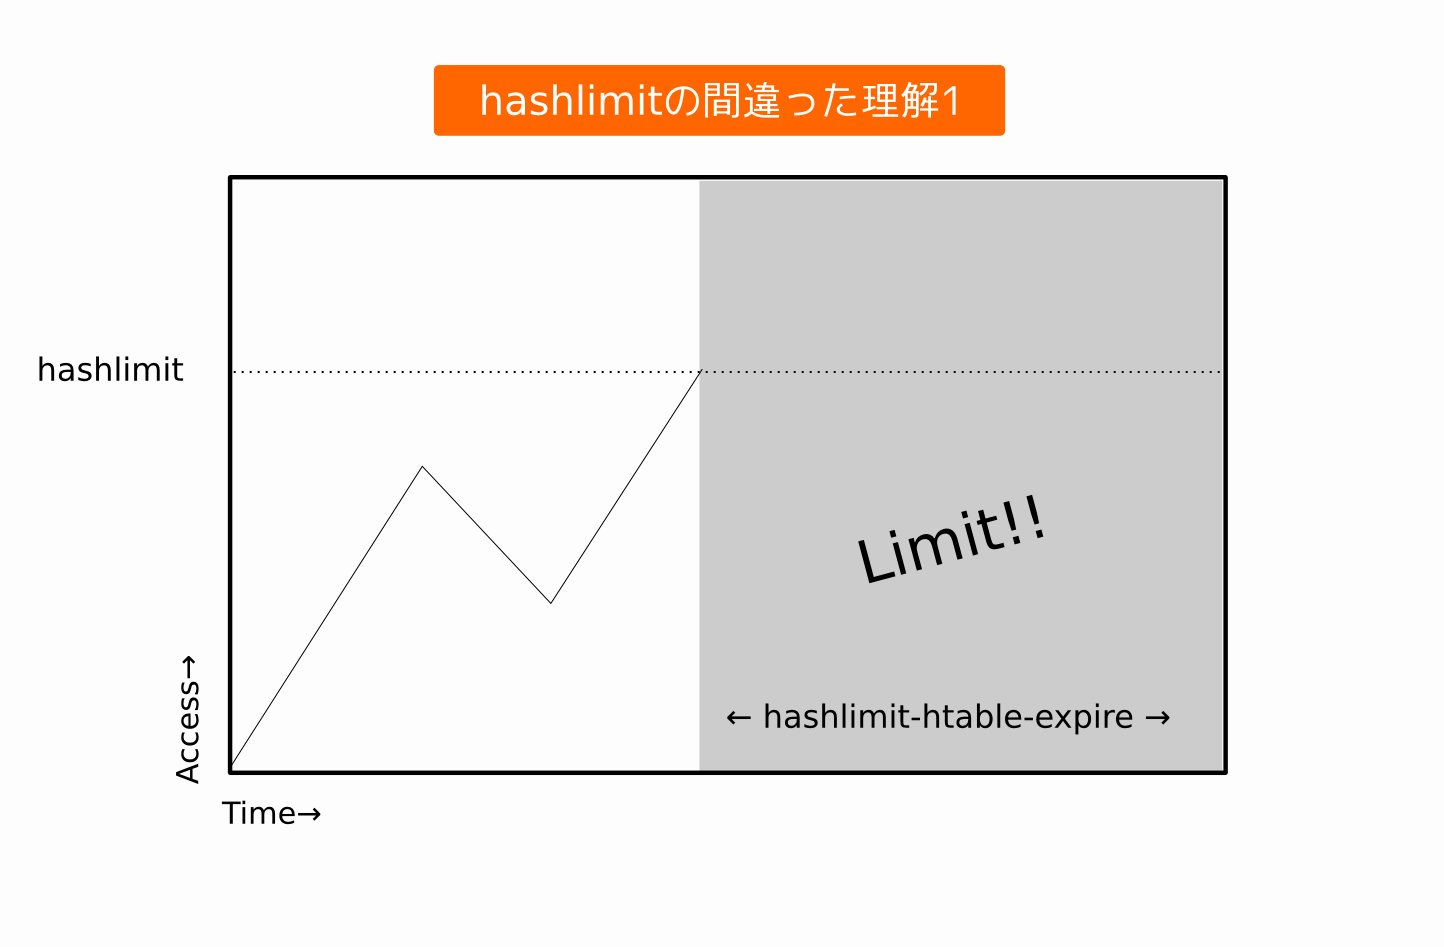 hashlimit-1